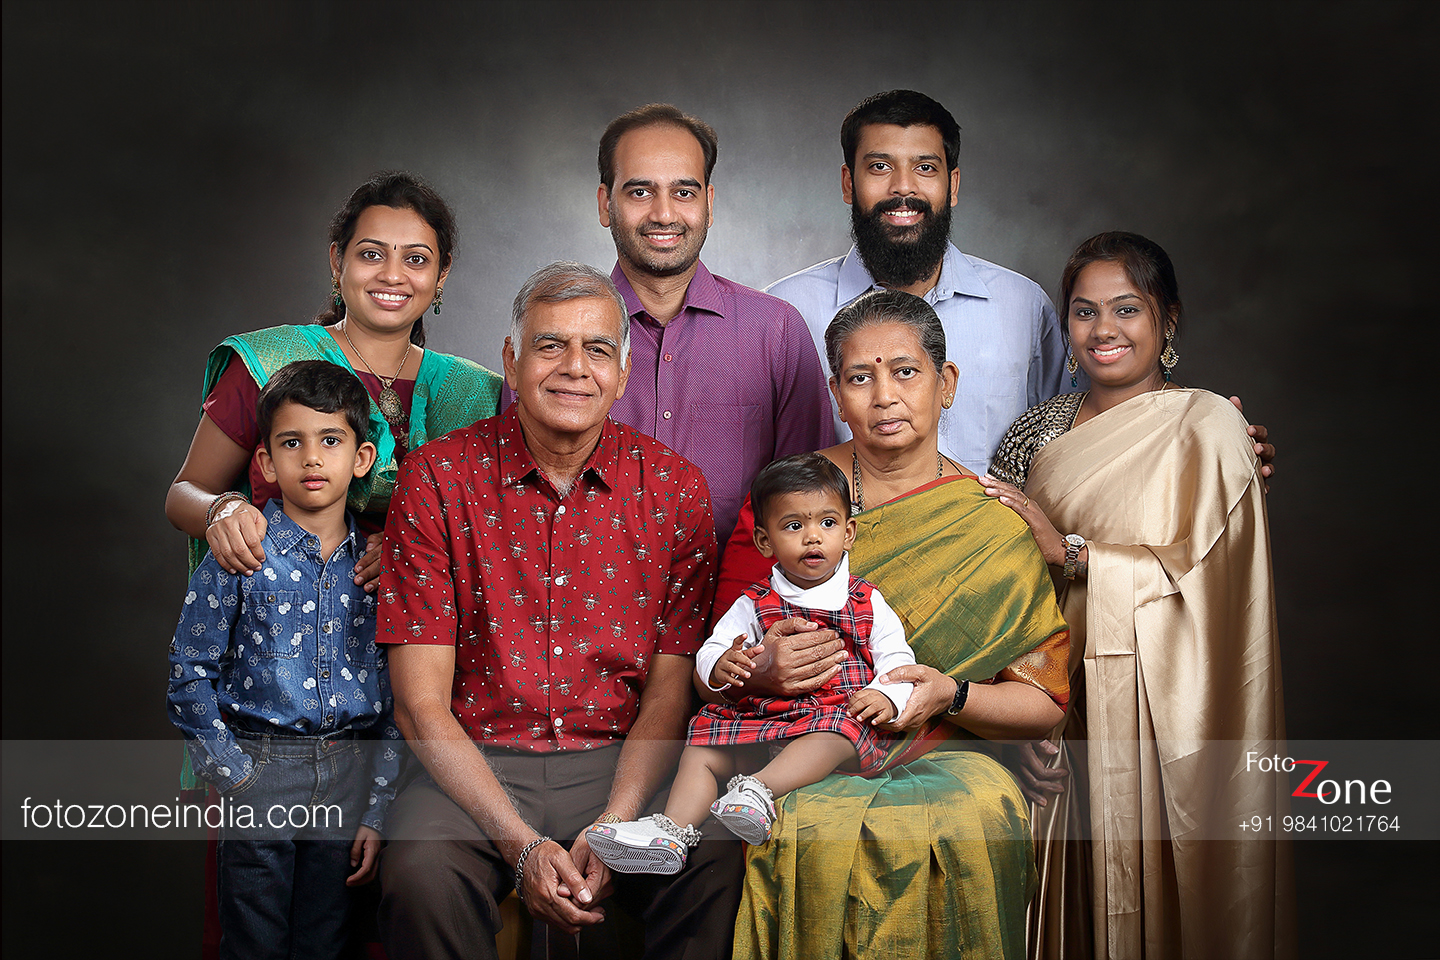 Armed with world class equipments and a fully functional indoor studio foto zone family portrait photographers offer various suggestions